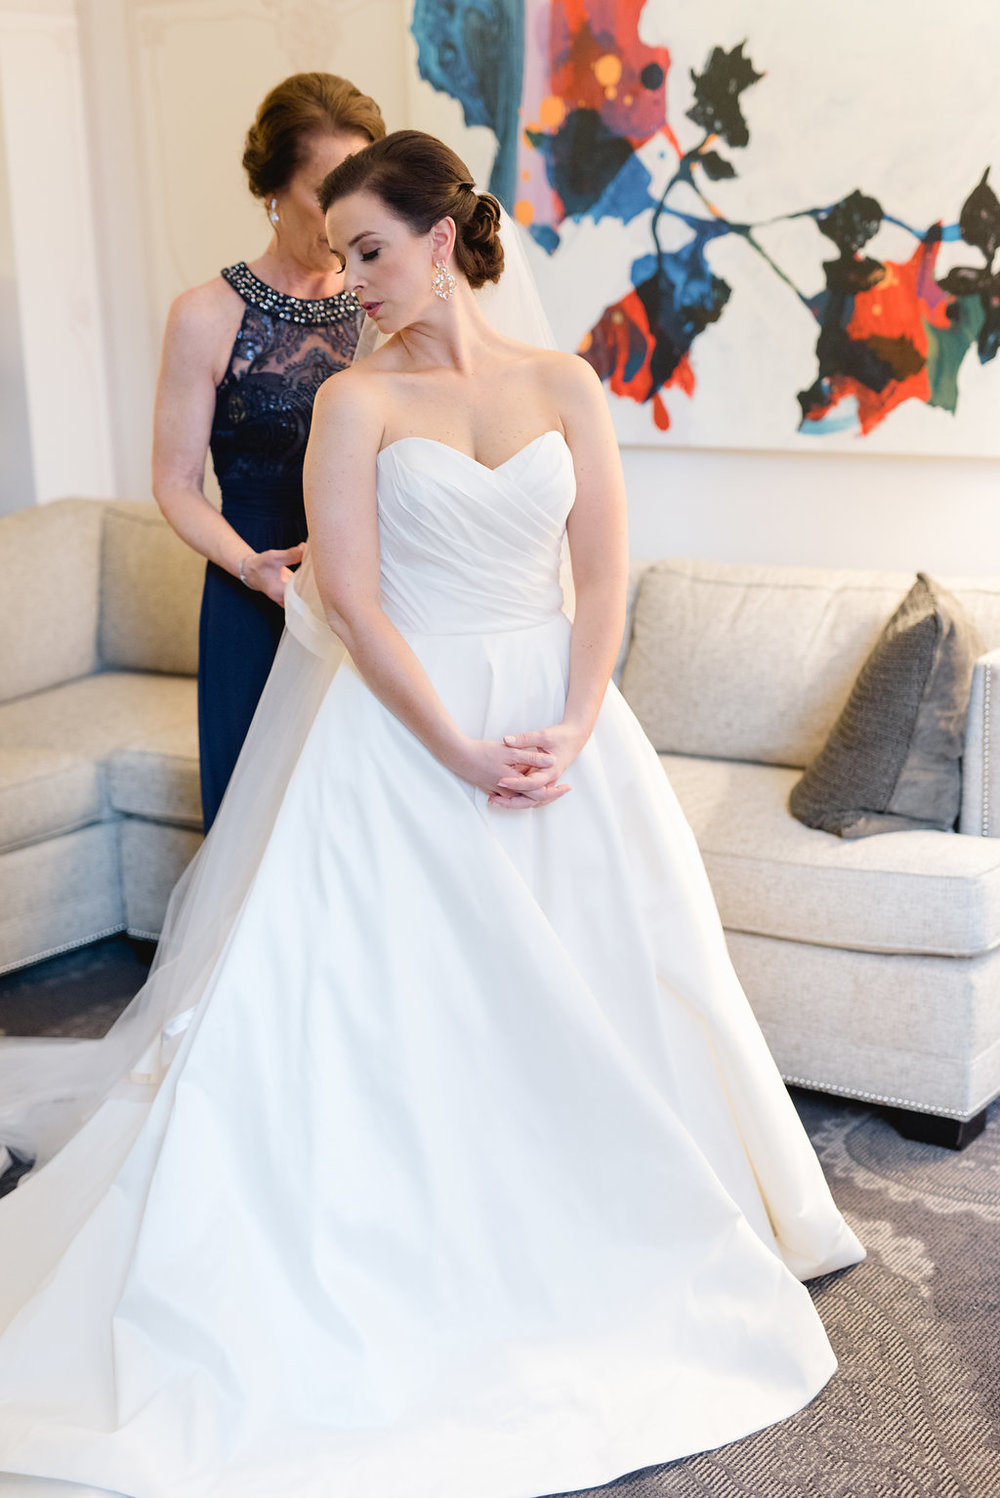 Mother of the Bride helping Bride with wedding dress for Pittsburgh wedding at Hotel Monaco